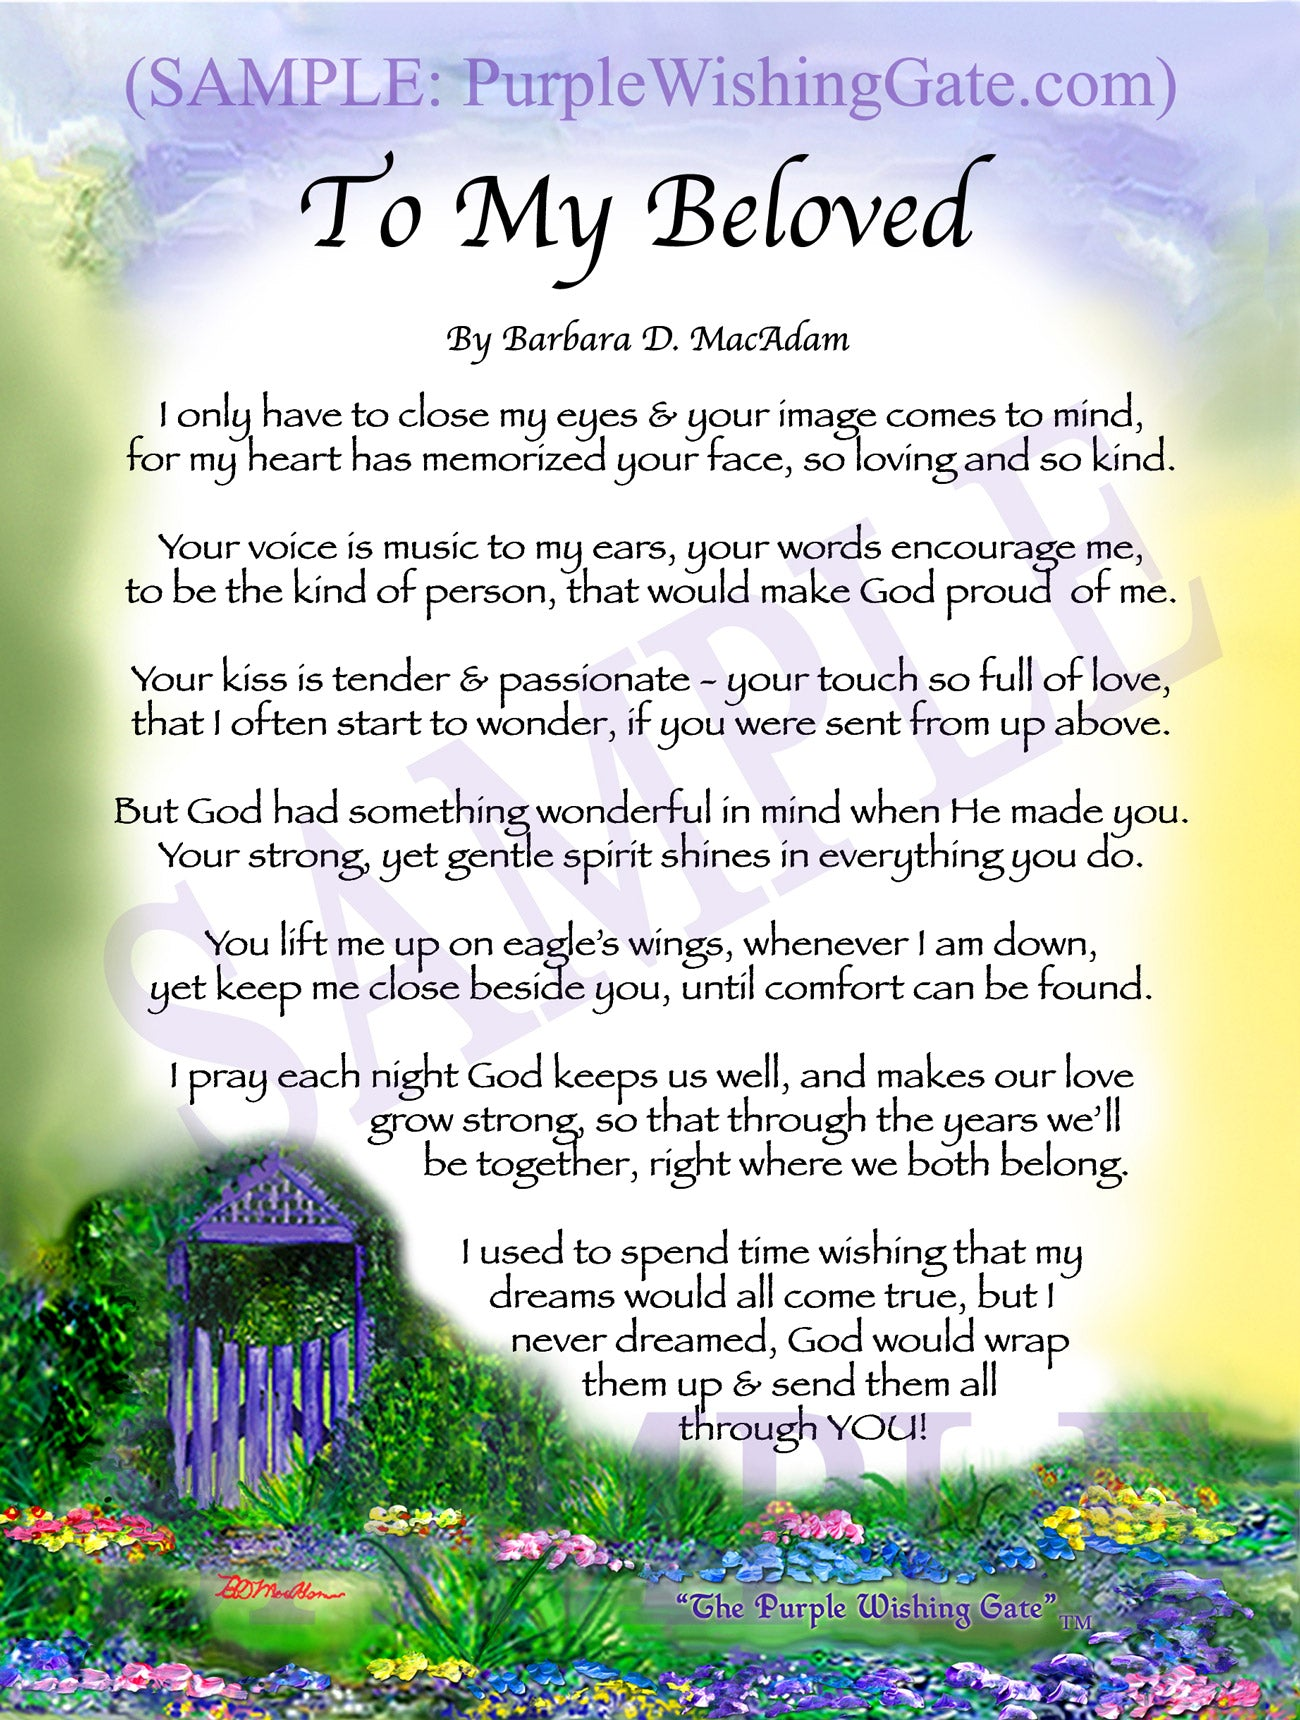 To My Beloved - Love Poem - PurpleWishingGate.com